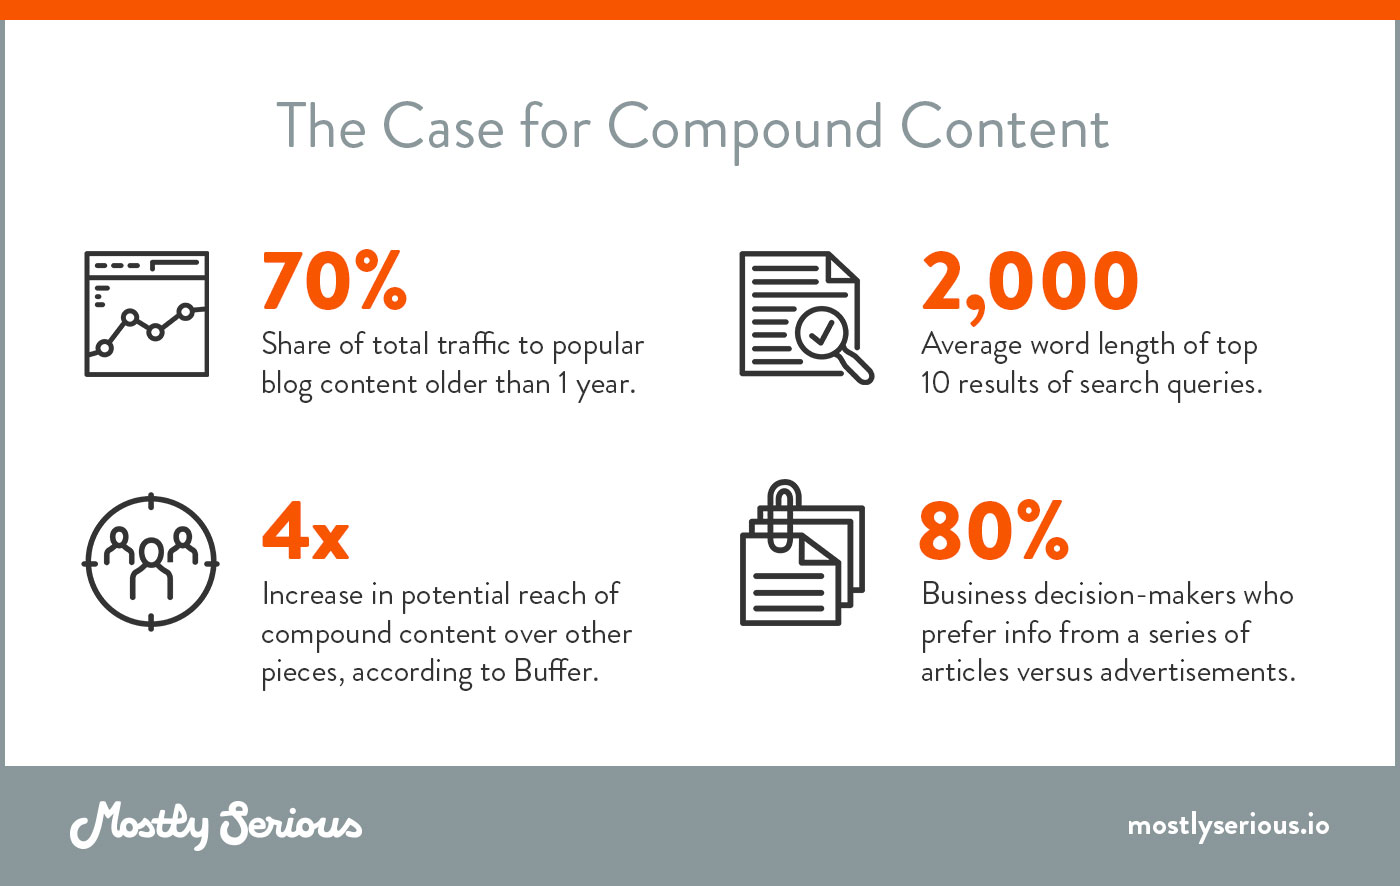 Benefits of Compound Content